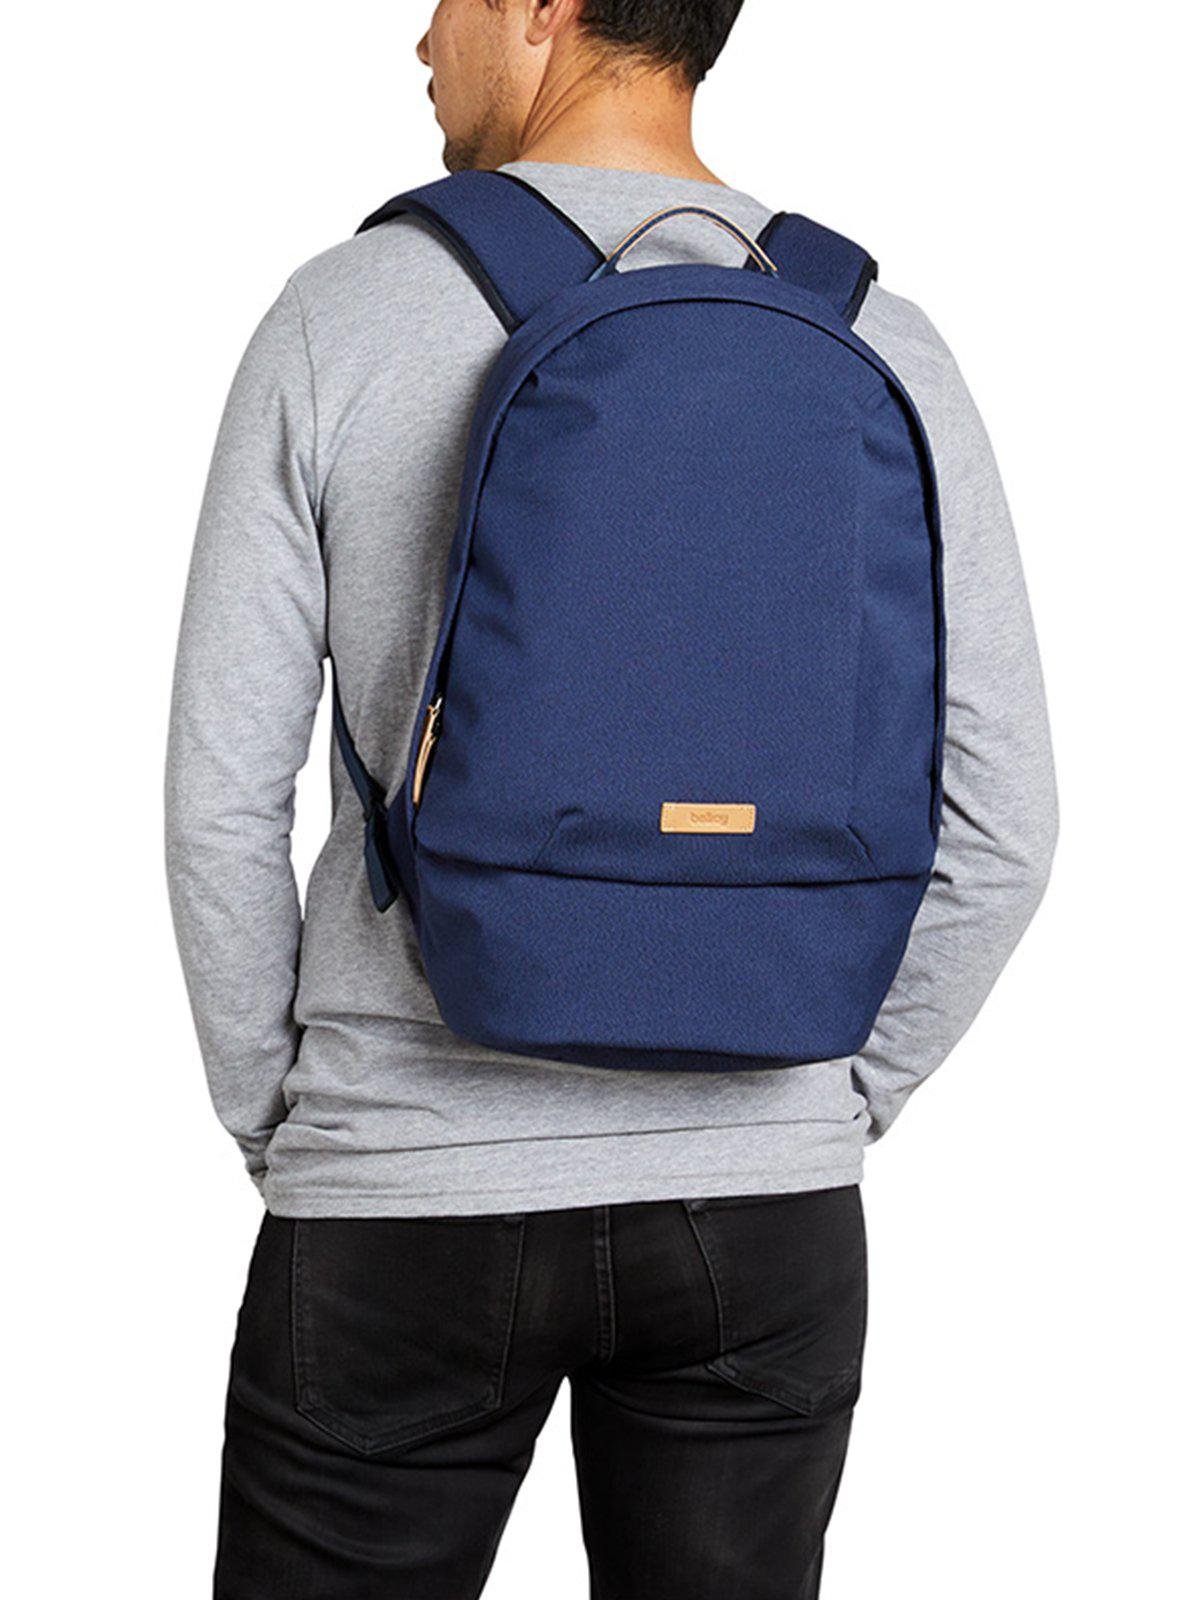 Bellroy Classic Backpack Ink Blue - MORE by Morello Indonesia